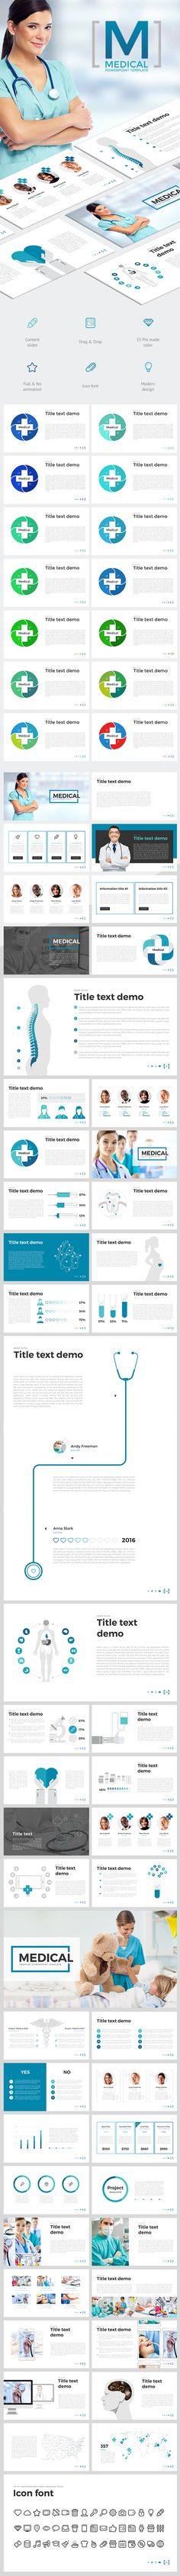 Medical powerpoint template design slides download http medical powerpoint template design slides download httpgraphicriveritemmedical powerpoint template13624967refksioks pinterest toneelgroepblik Choice Image